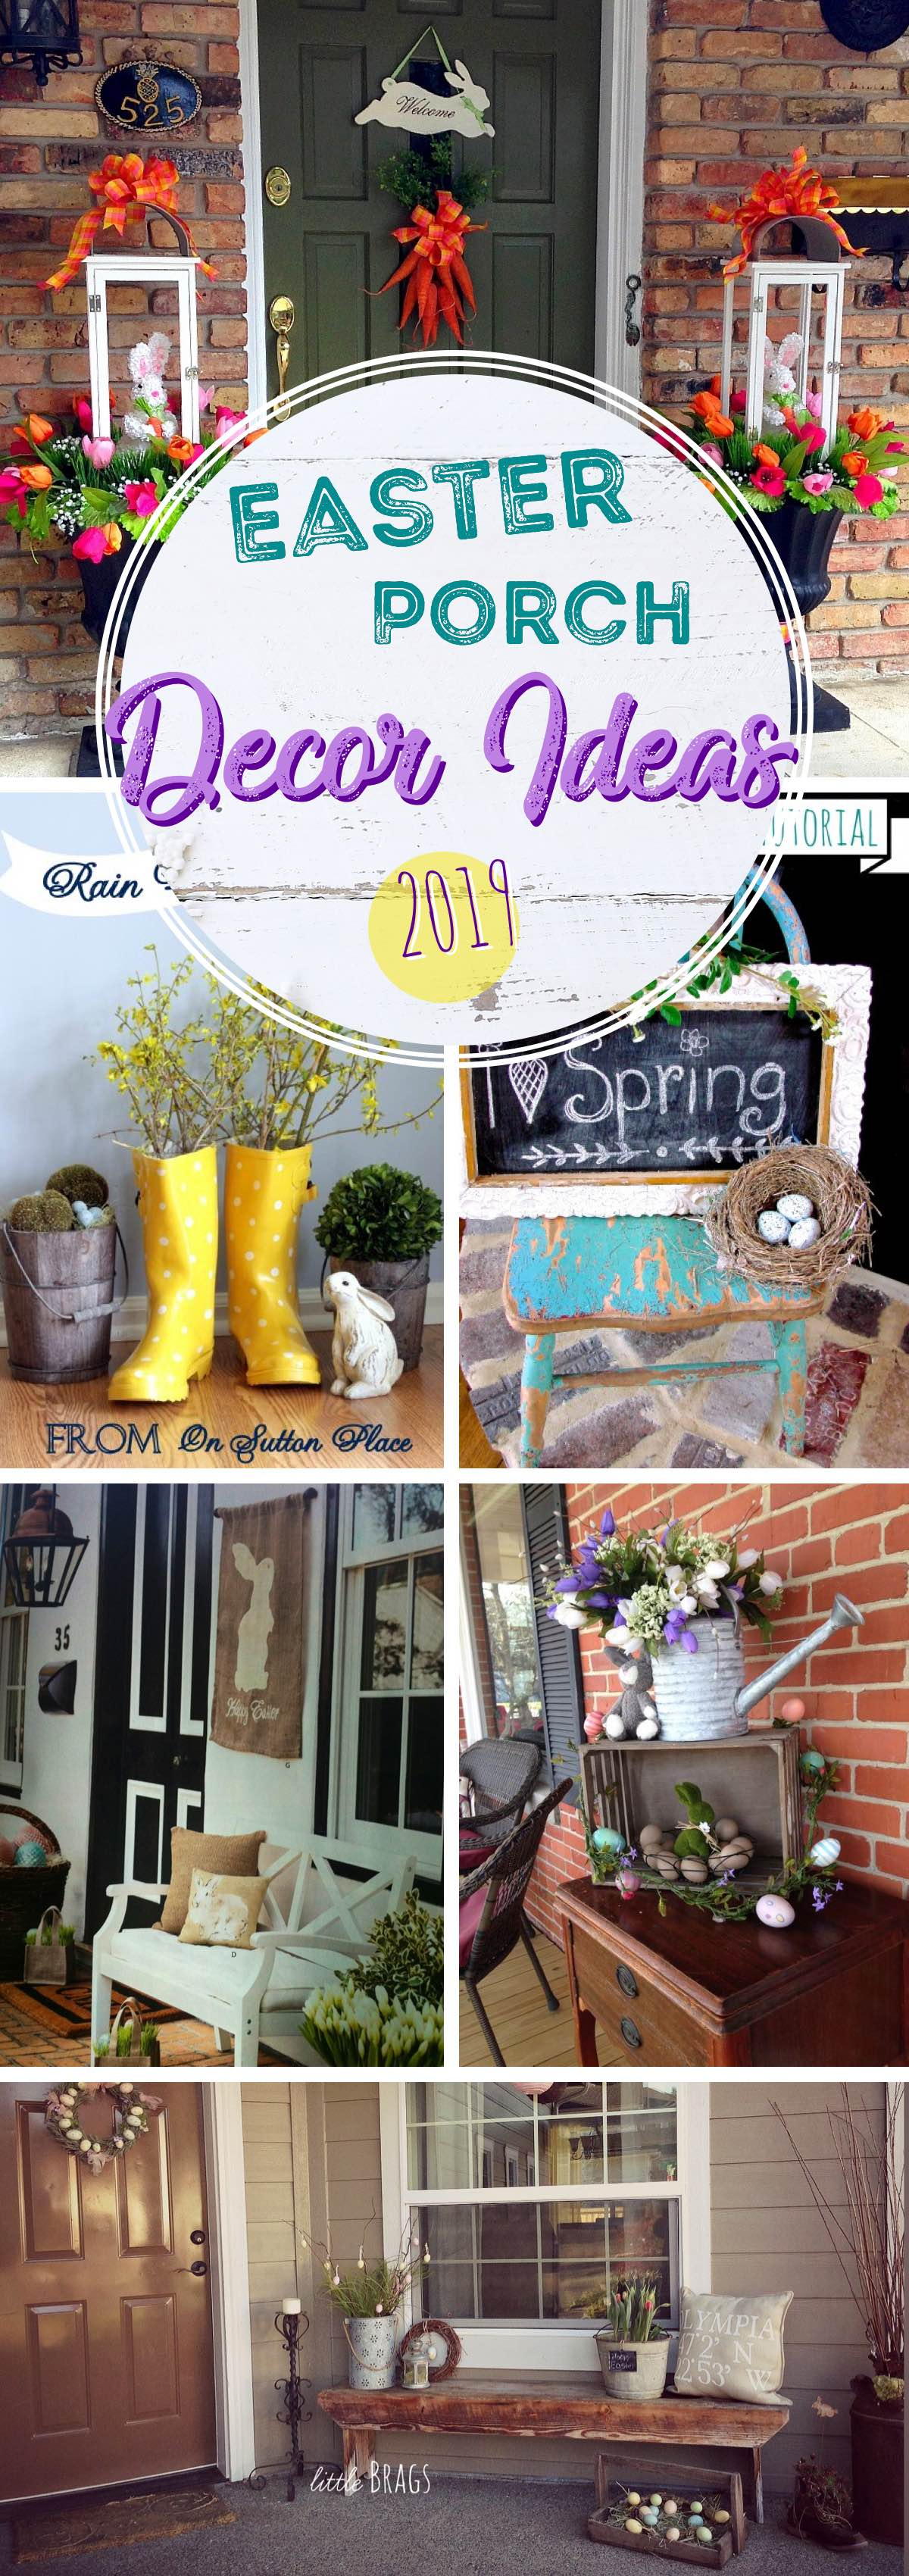 Incredible Easter Porch Decor Ideas